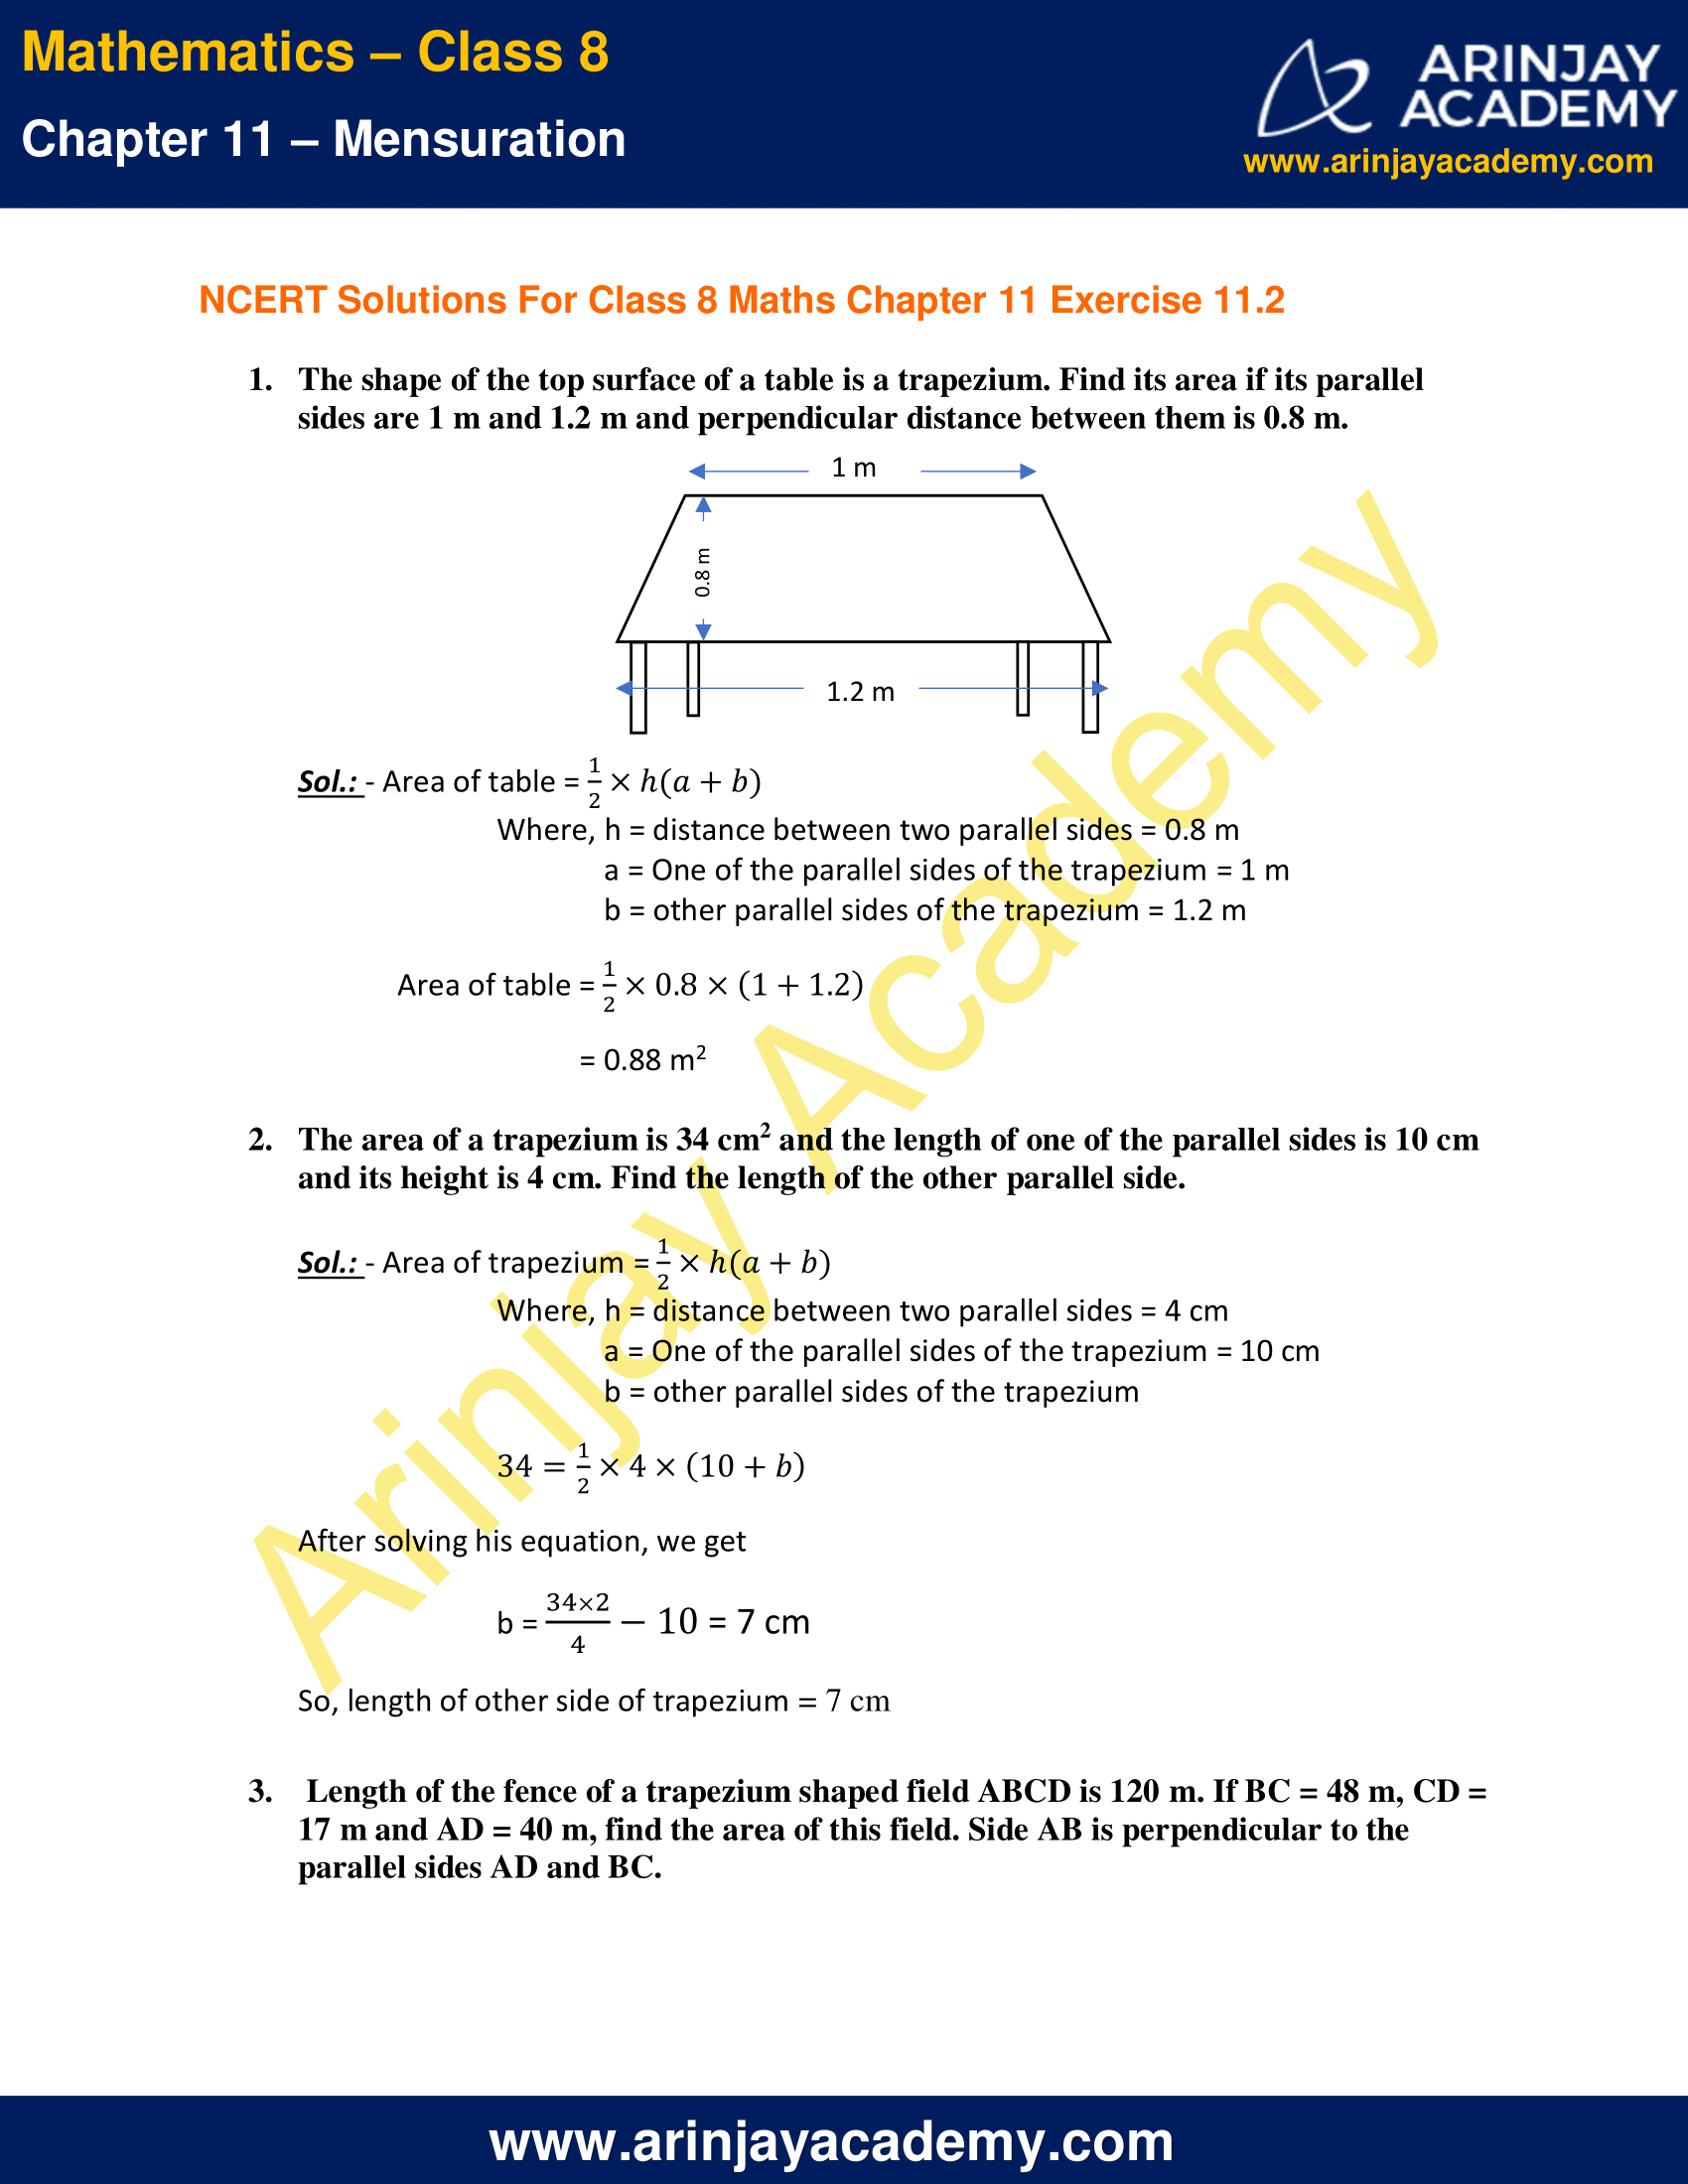 NCERT Solutions for Class 8 Maths Chapter 11 Exercise 11.2 image 1